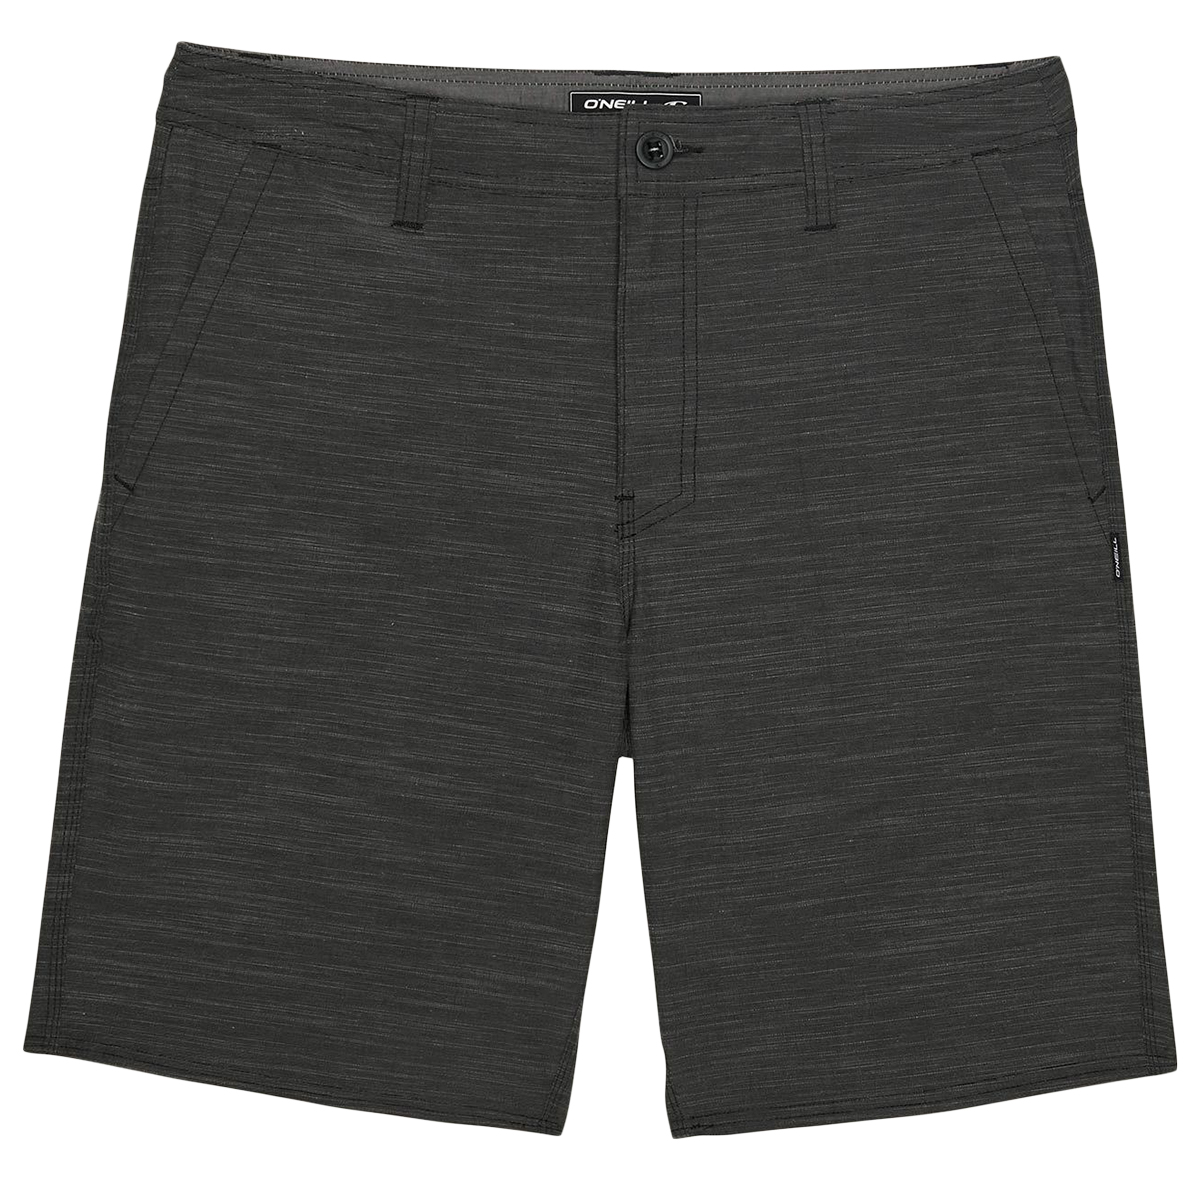 O'neill Men's Locked Slub Shorts - Black, 34